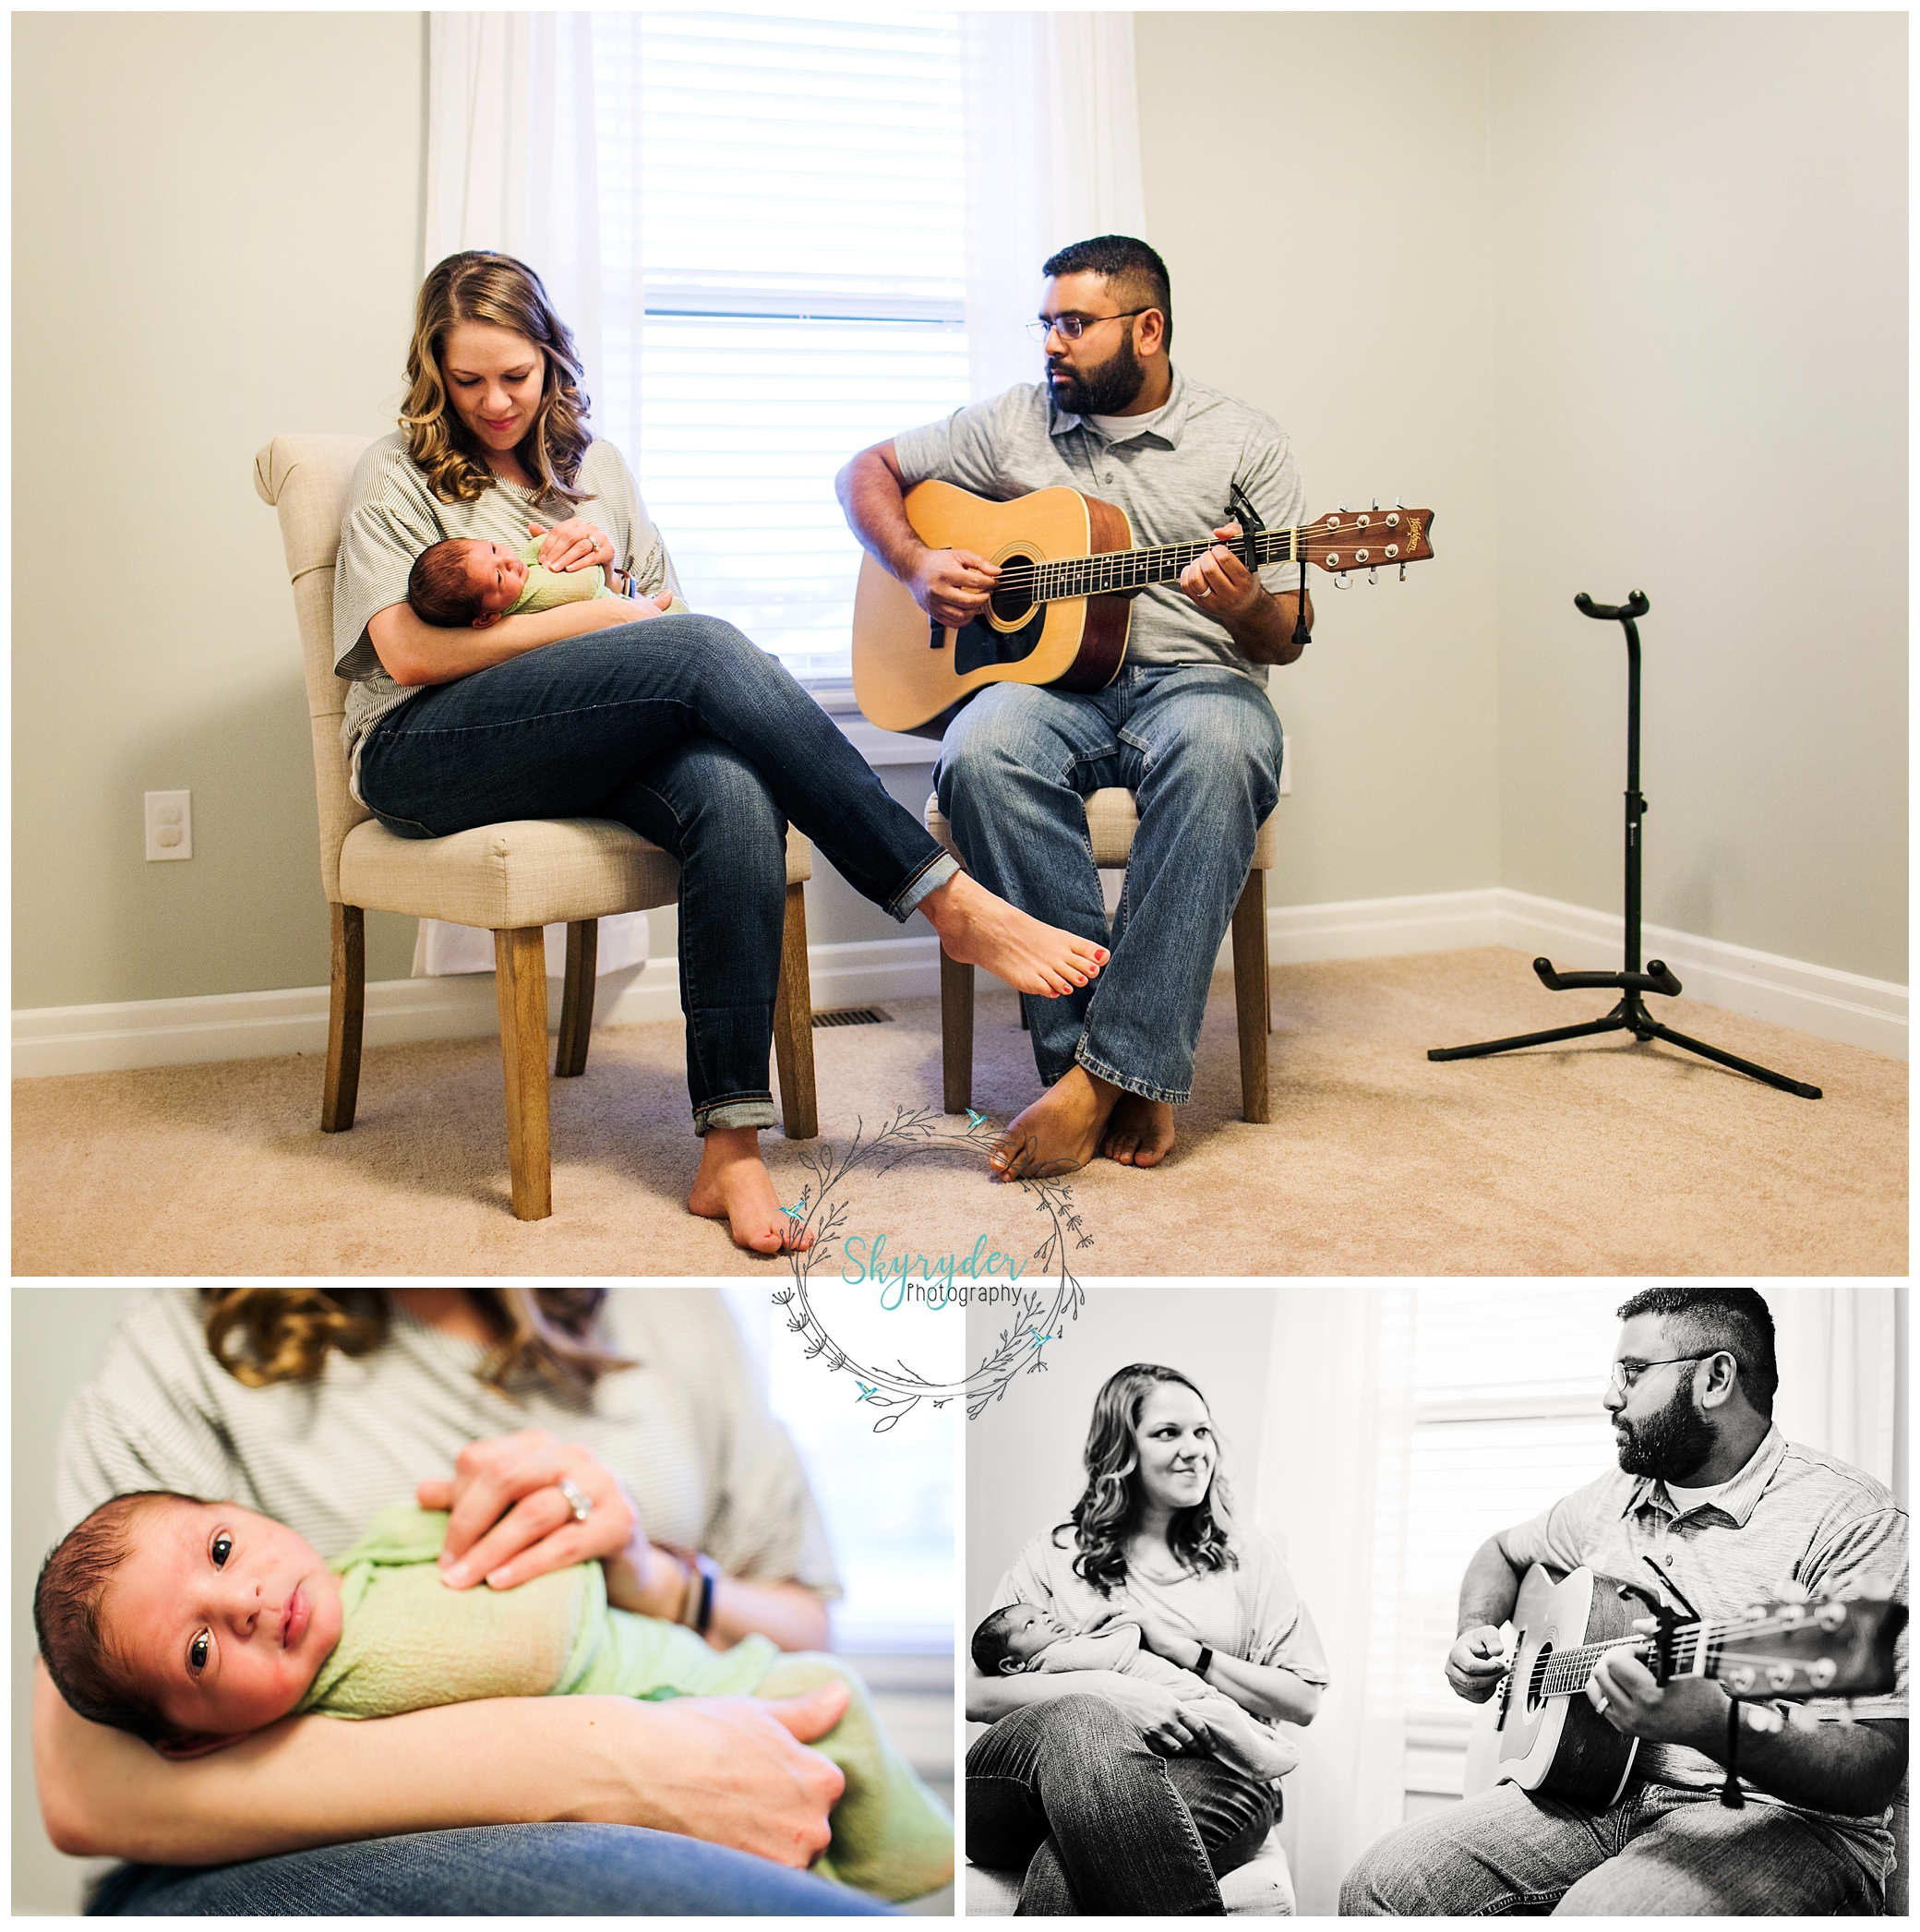 newborn maternity blacksburg photographer photography roanoke skyryder virginia